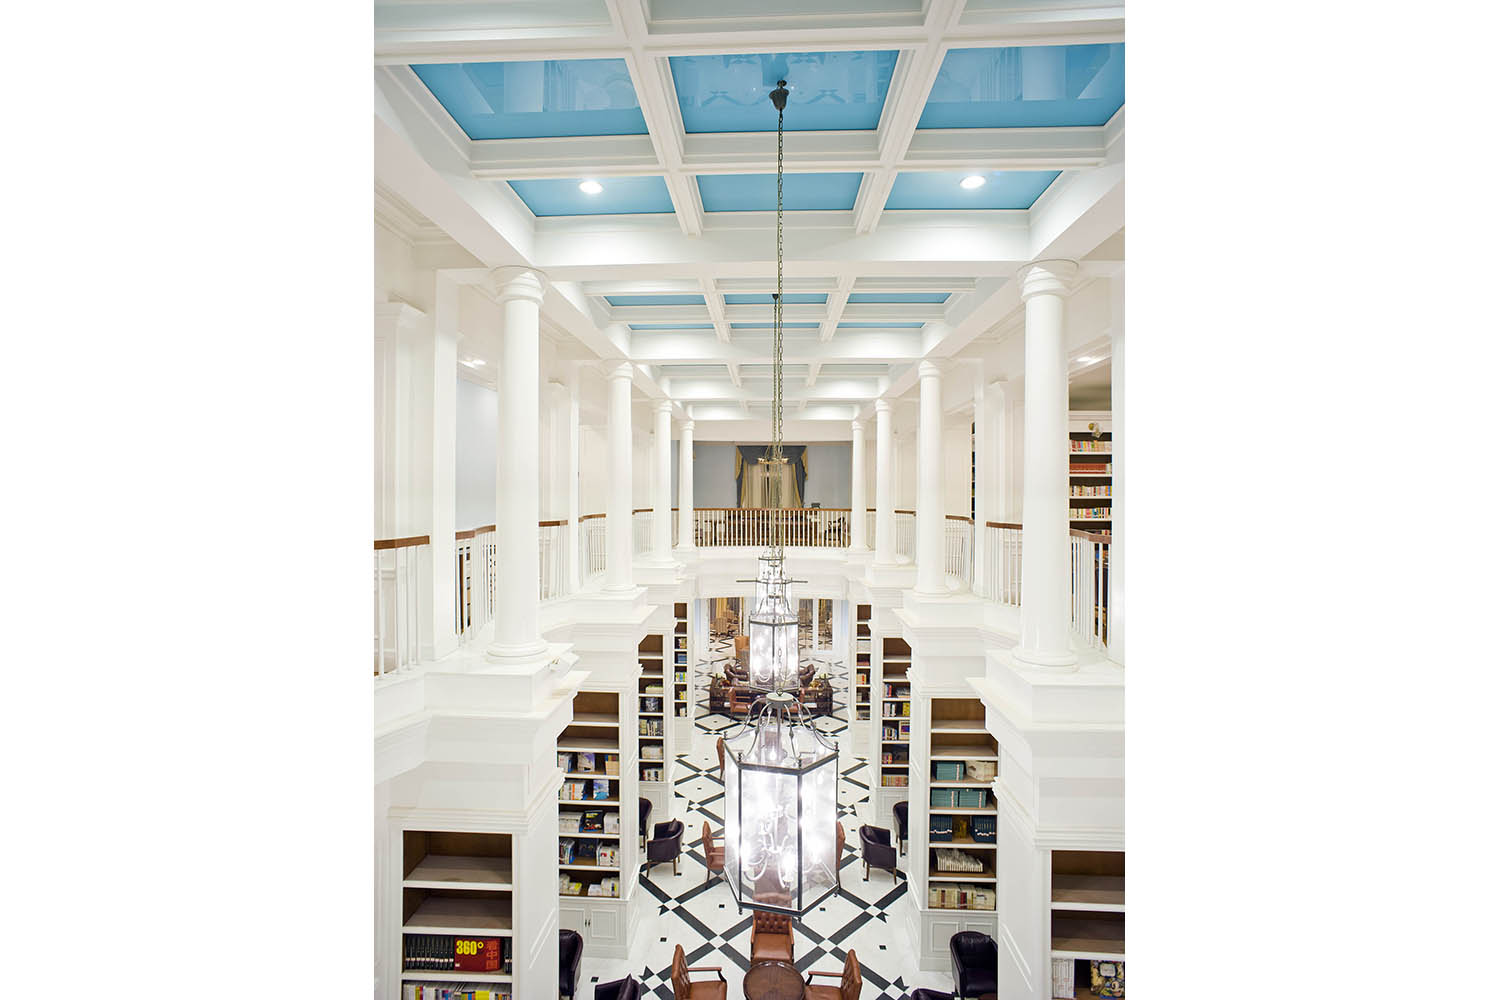 Library_2F_Vertical view_small.jpg